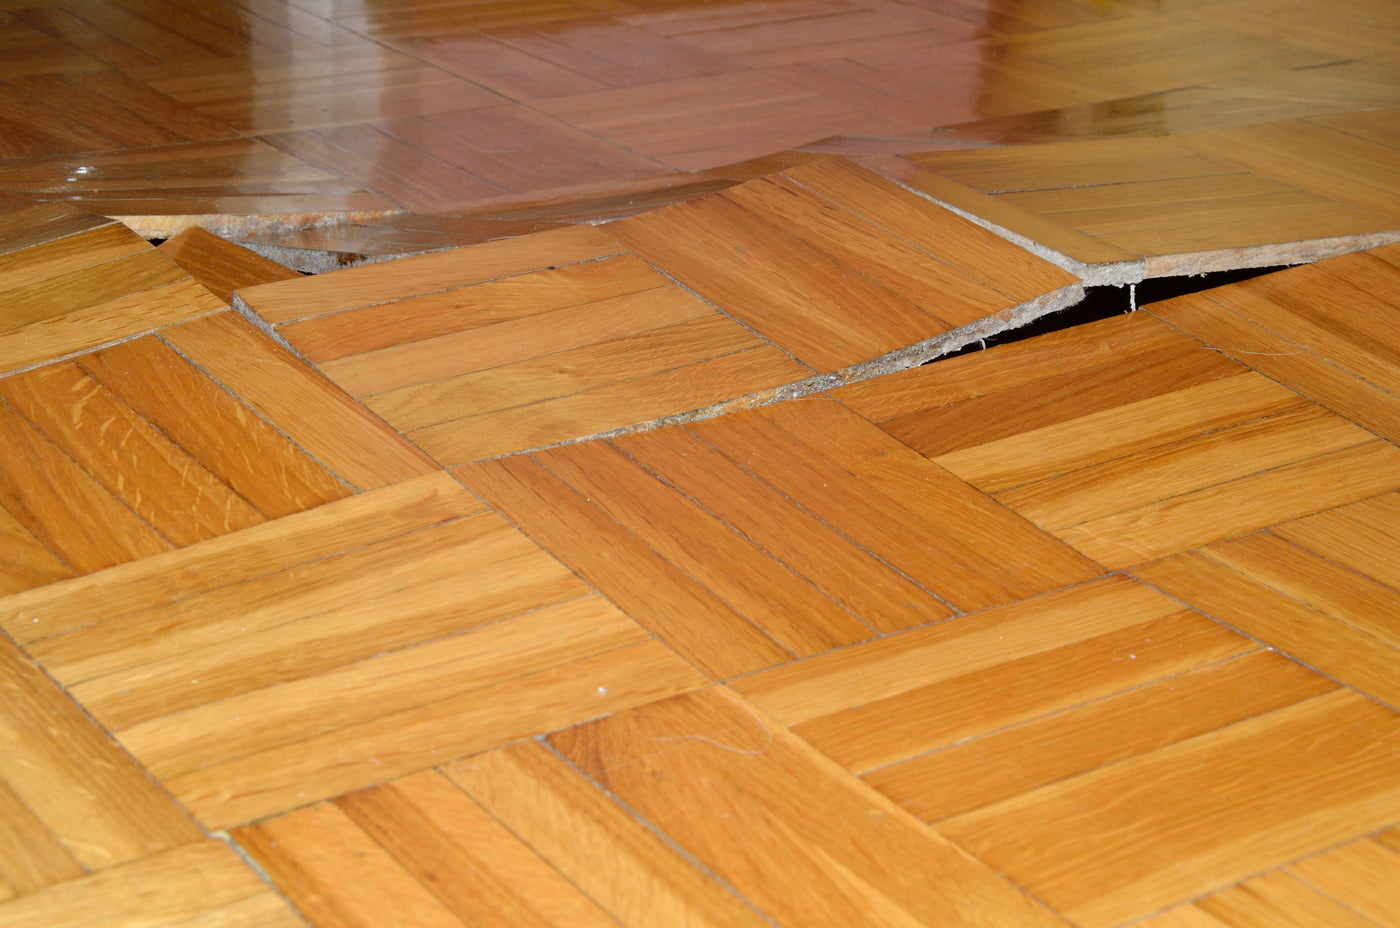 How To Fix A Buckled Wood Floor